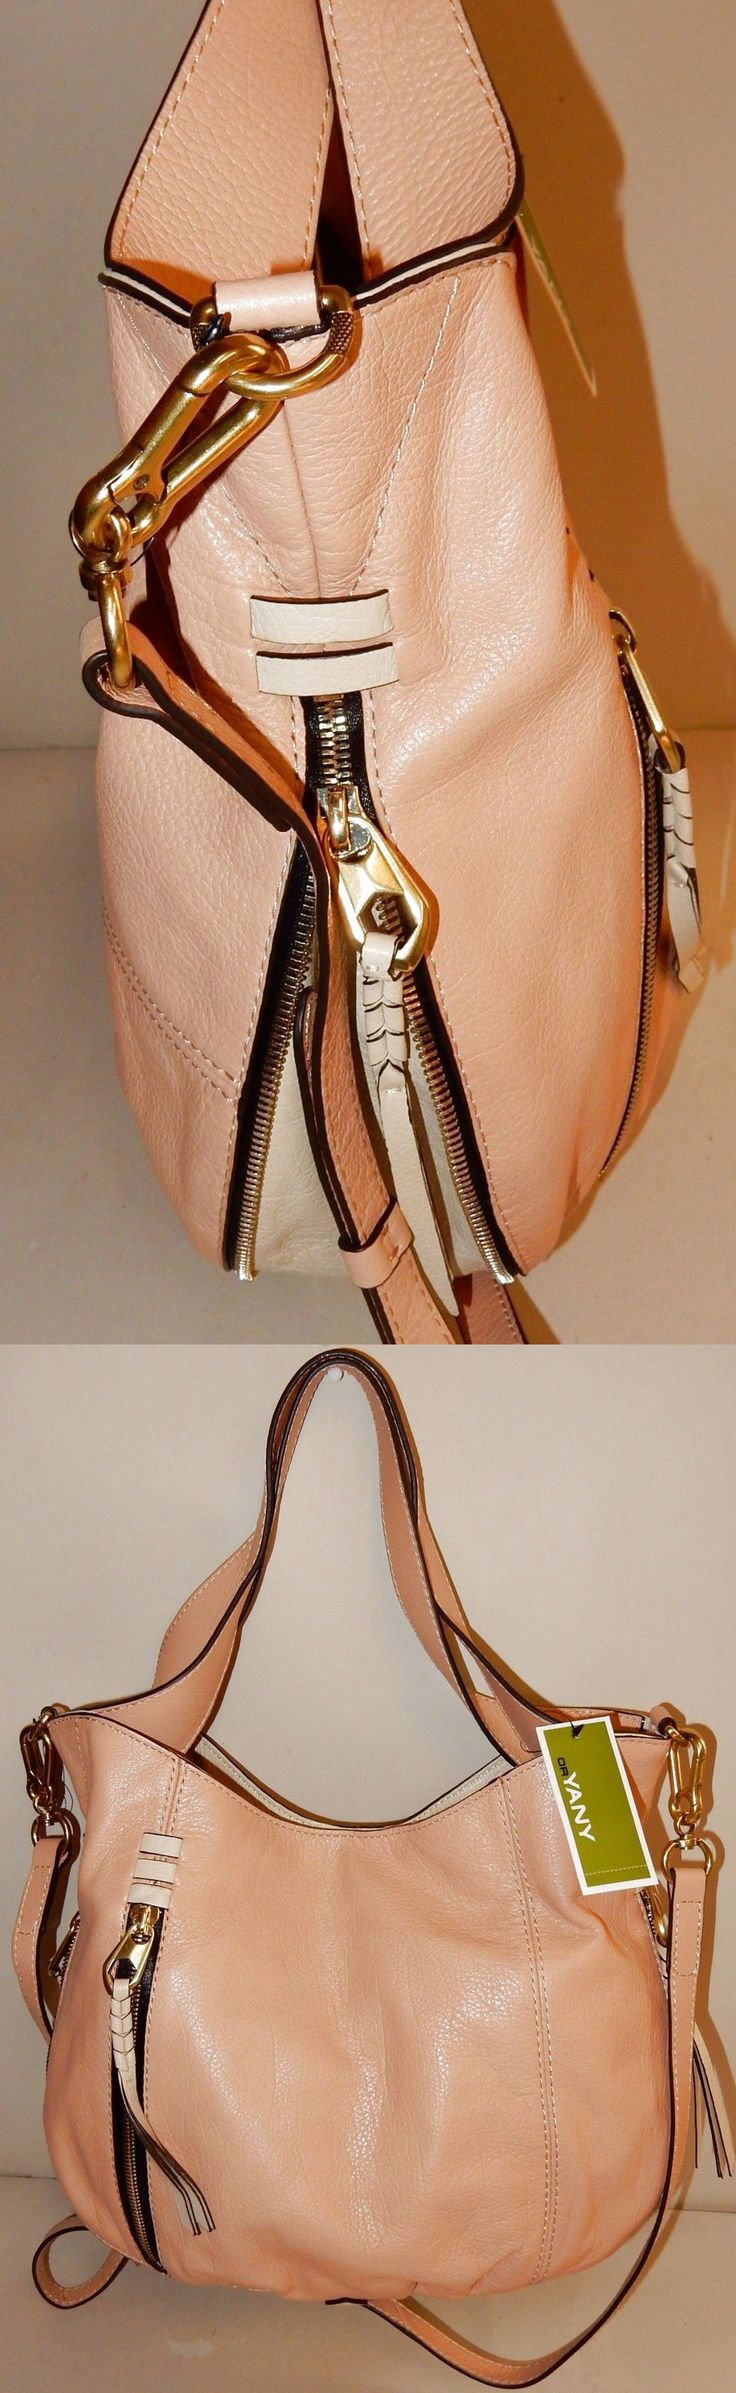 New orYANY Italian Leather Convertible Shoulder Bag - Melanie in Almond $139.99